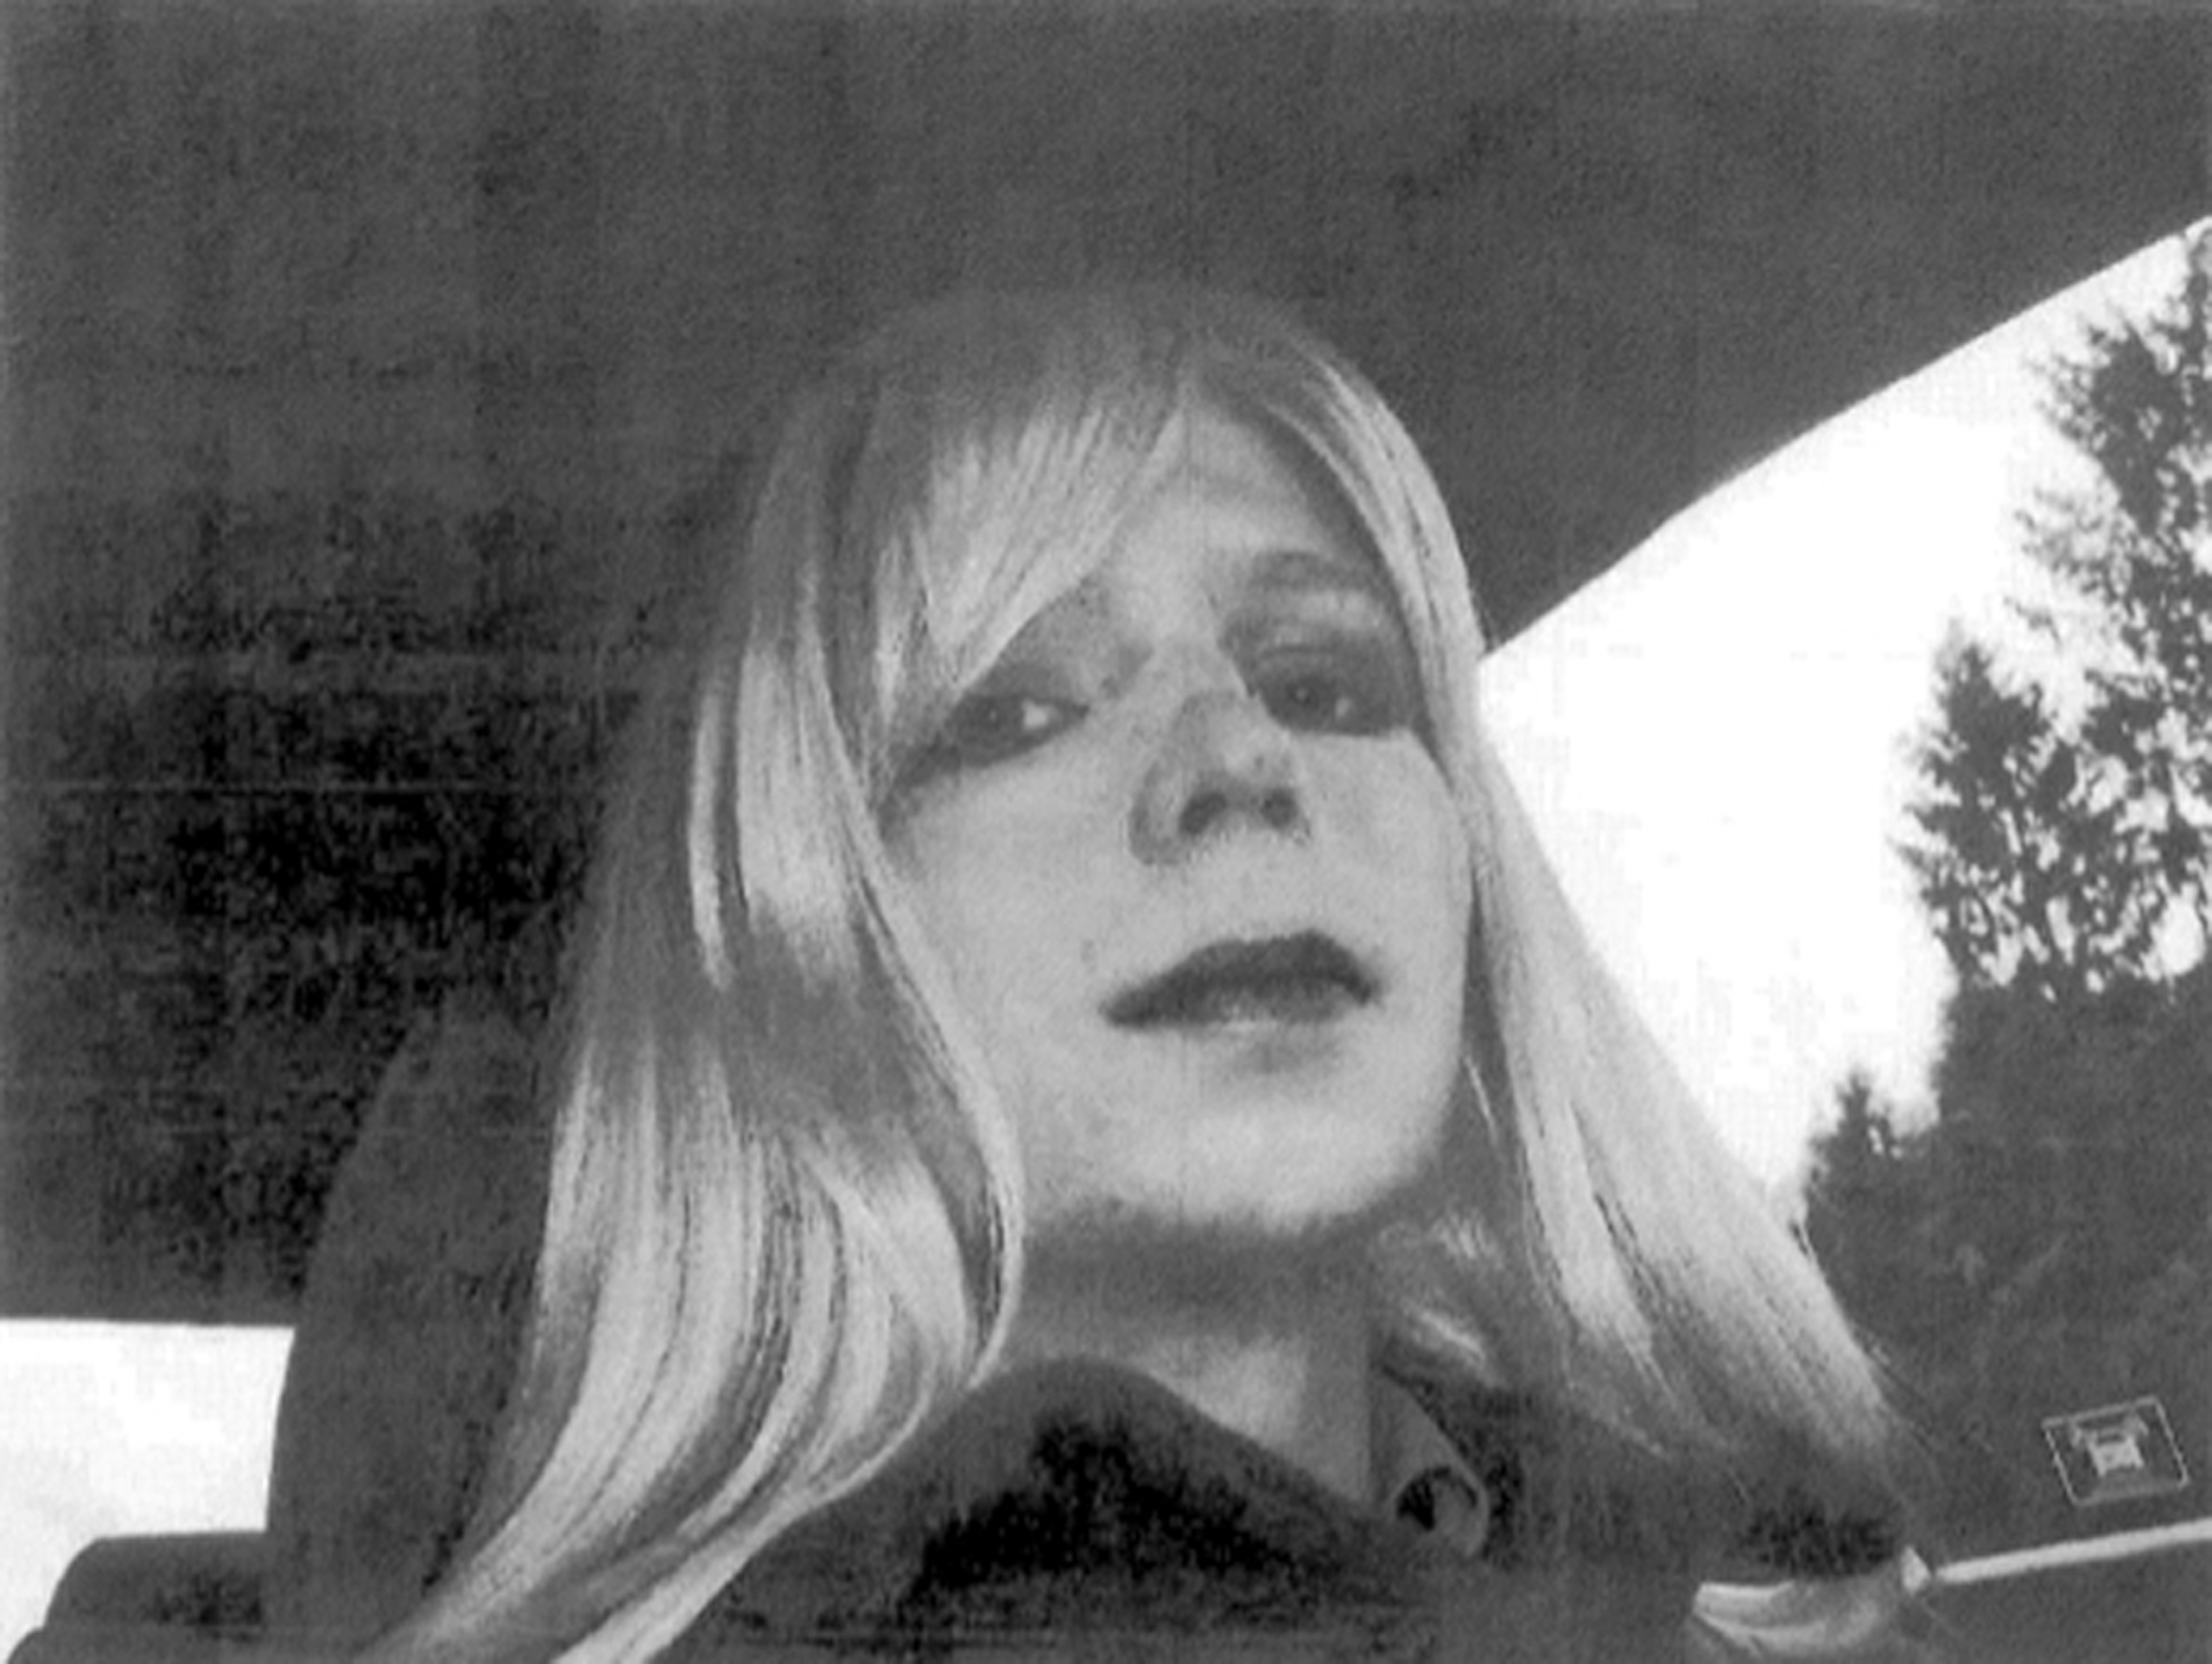 Chelsea Manning poses for a photo wearing a wig and lipstick.